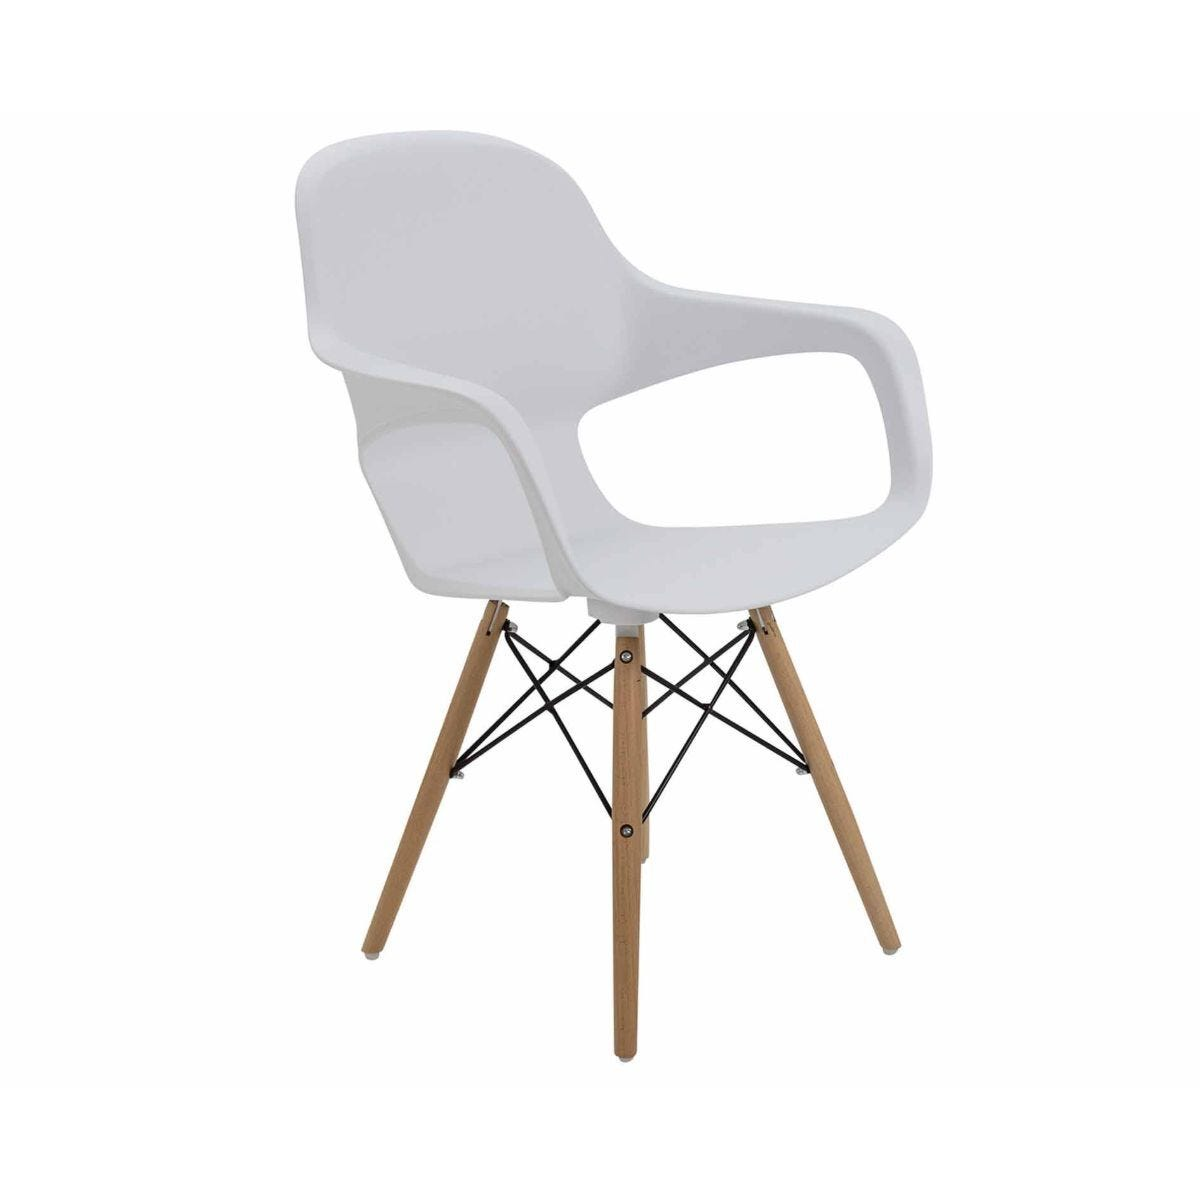 TC Office Ariel 2 Retro Chair with Wooden and Wire Base White